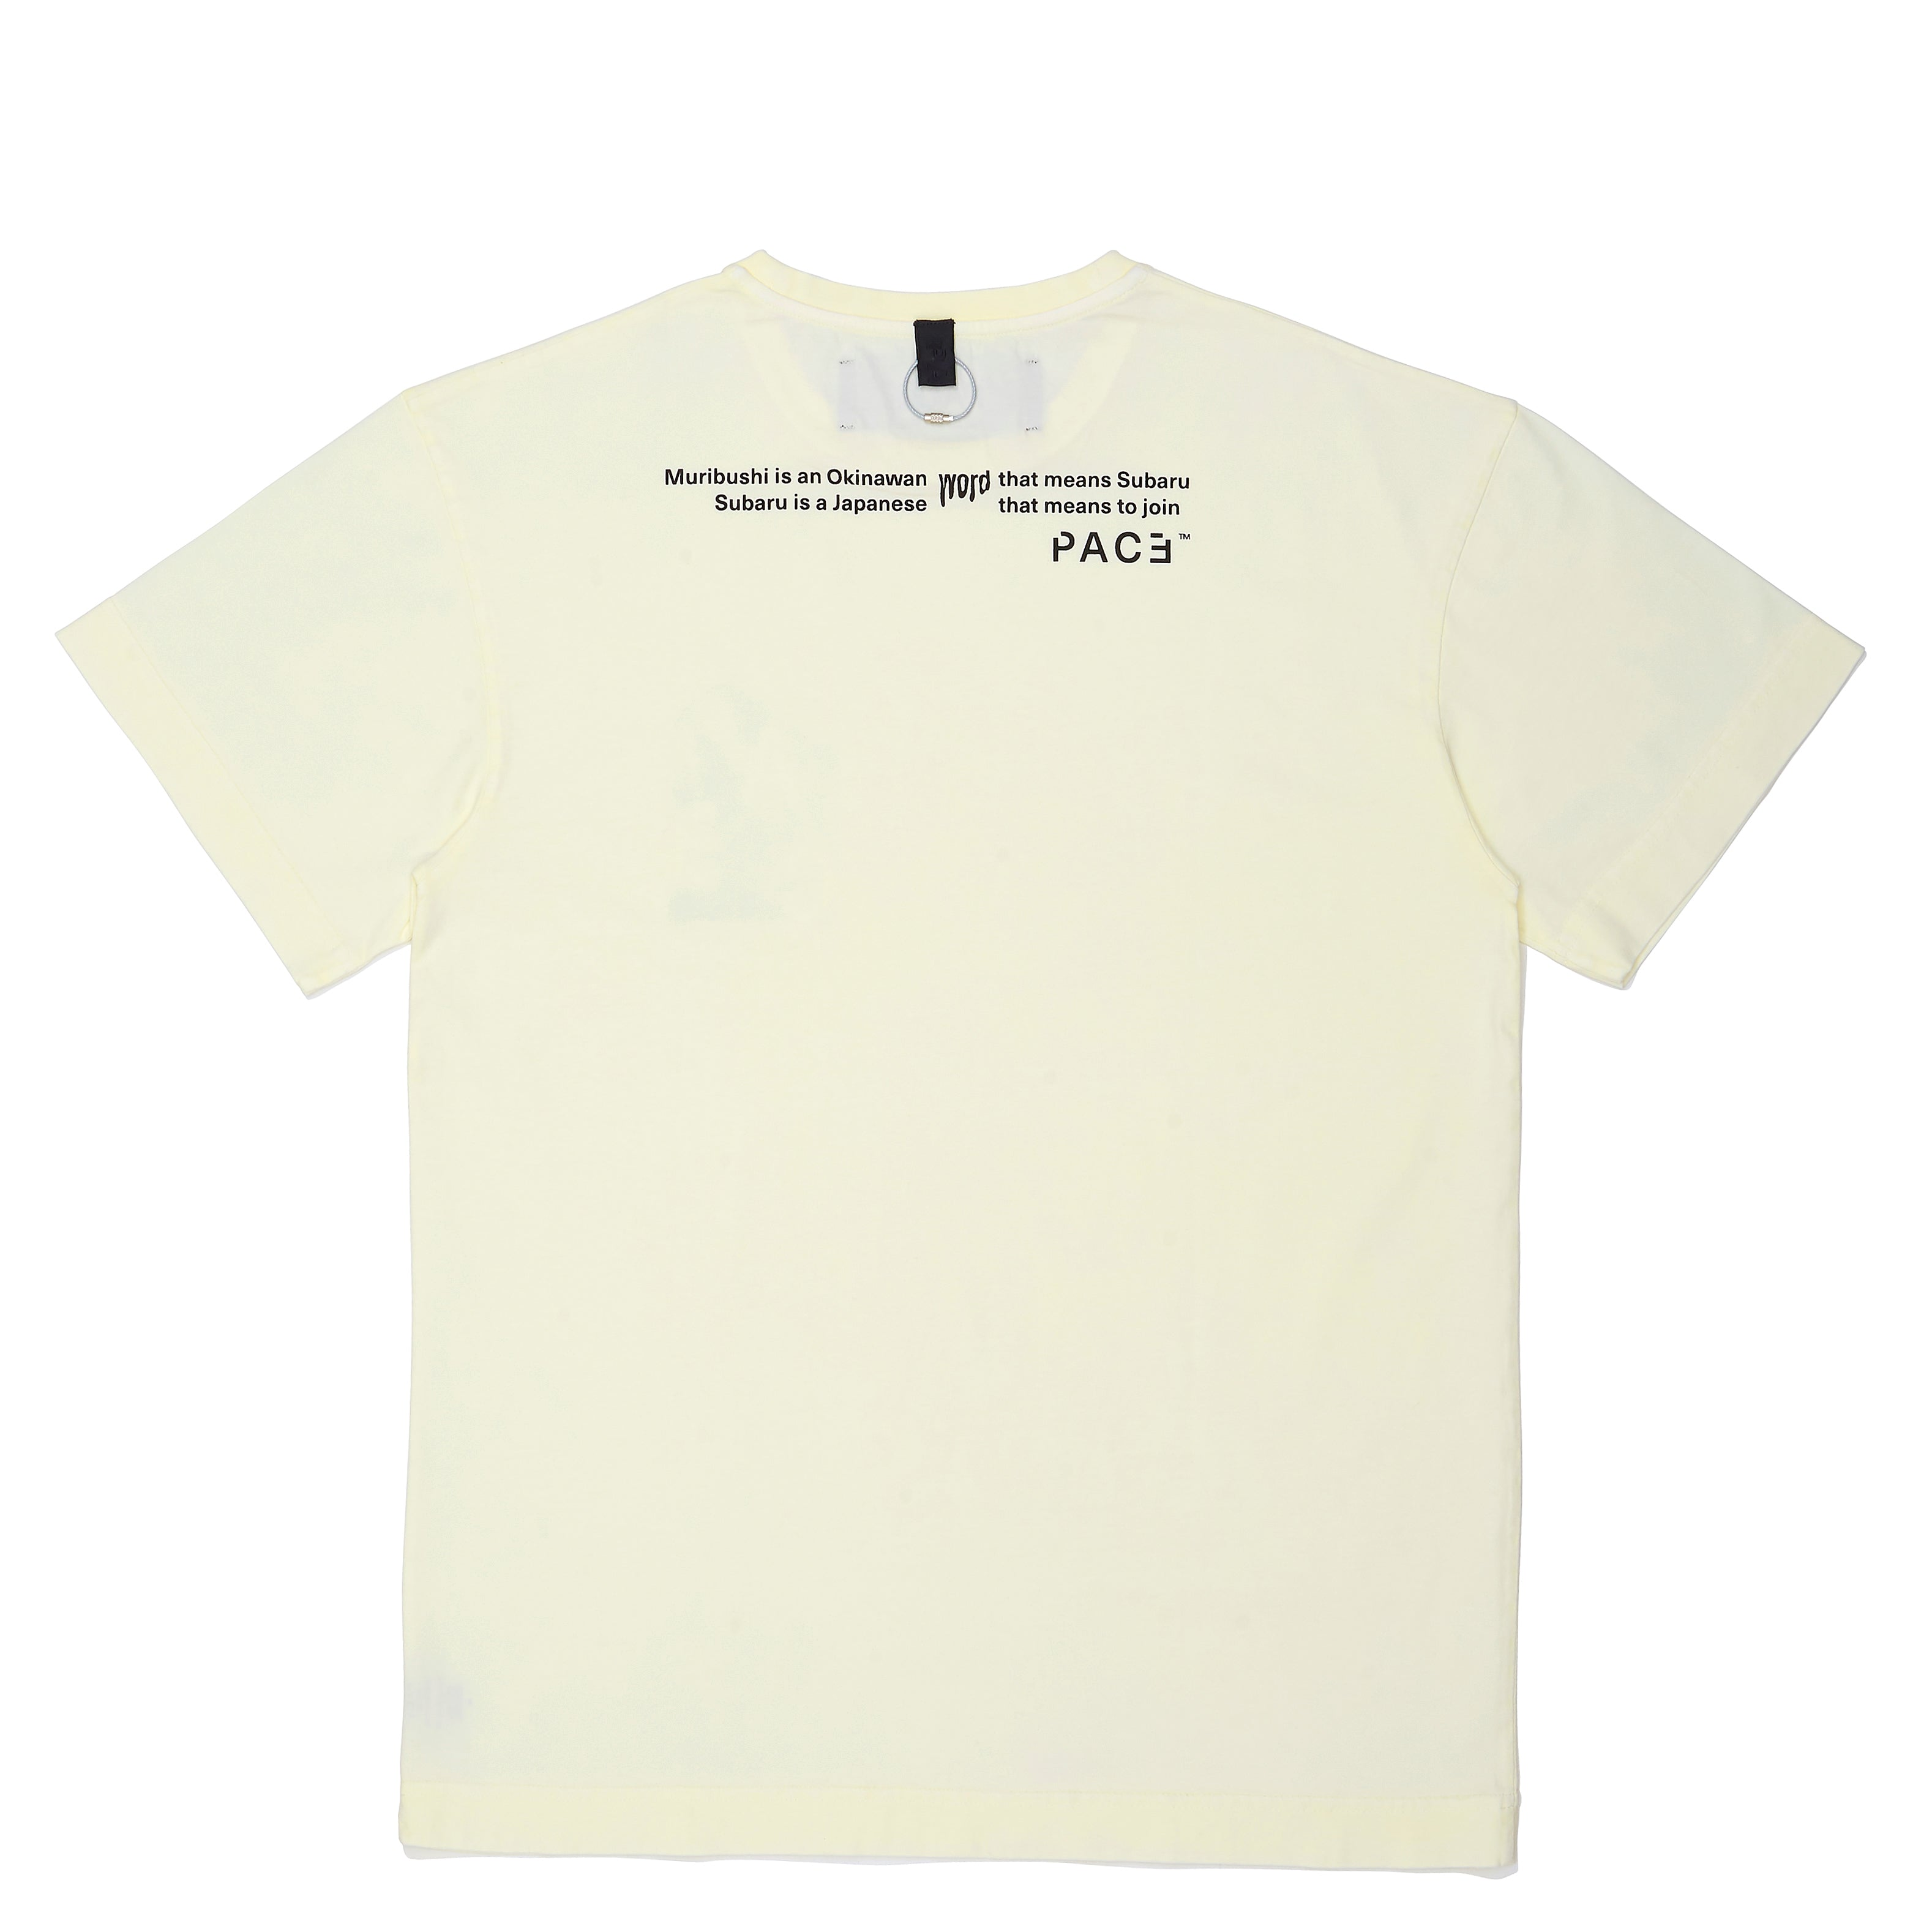 MRBSH2 T-SHIRT OFF WHITE PACE ™ (camiseta off white com arte no topo costas)